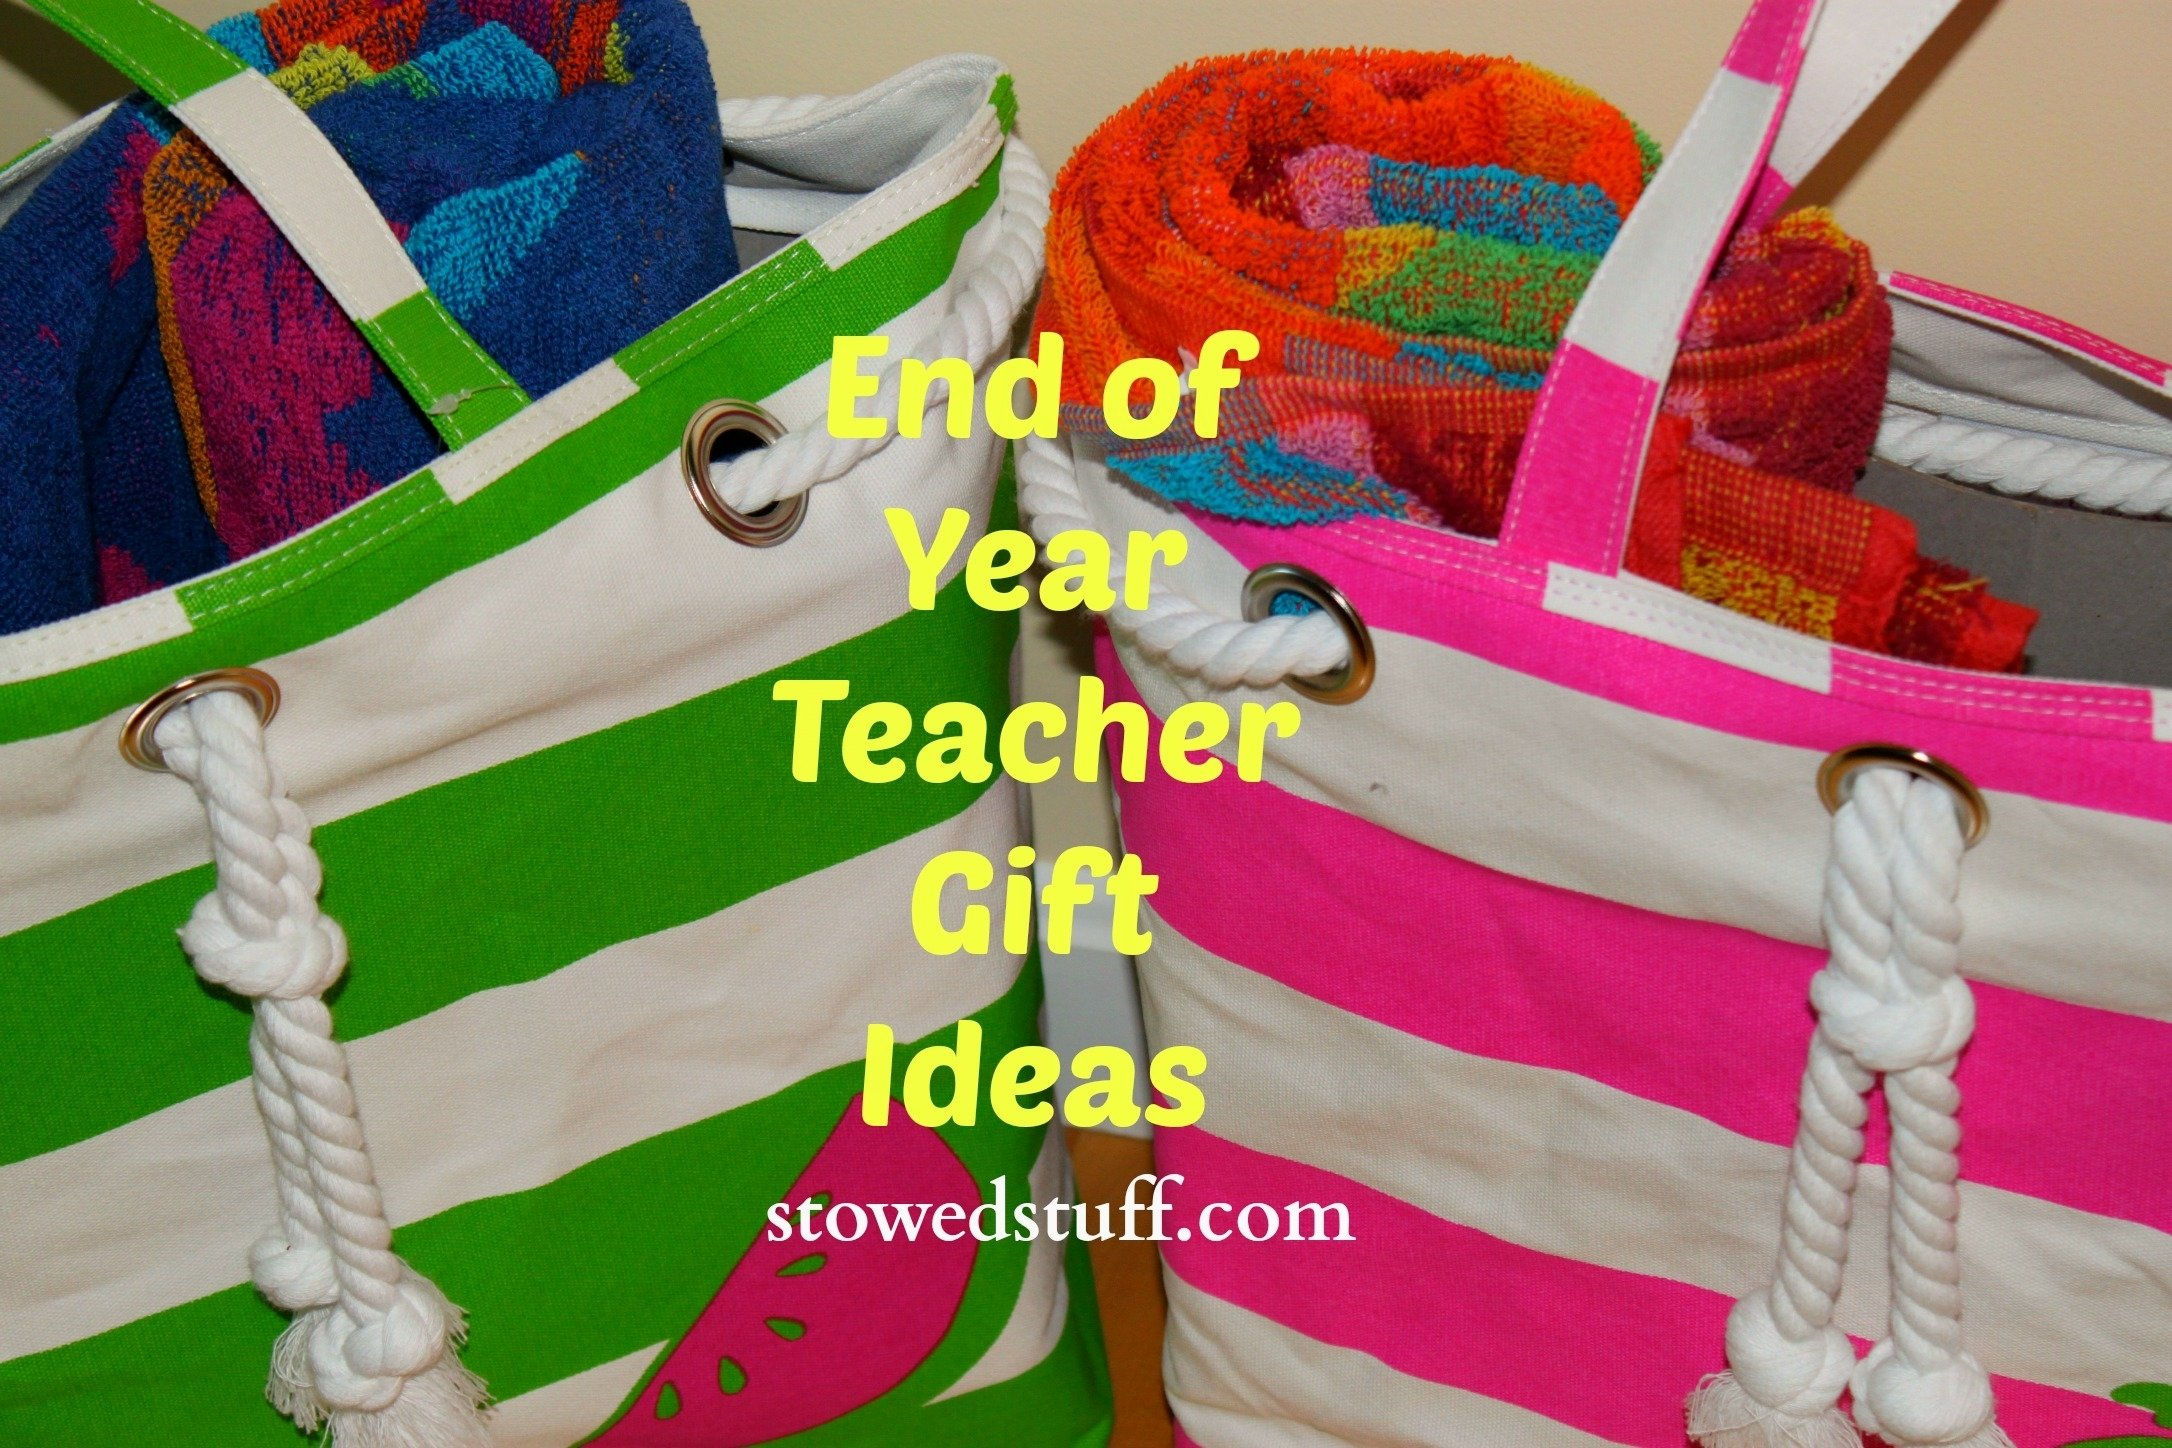 10 Most Popular Teacher Gift Ideas For End Of School Year what to get teachers at the end of the school year stowed stuff 2021